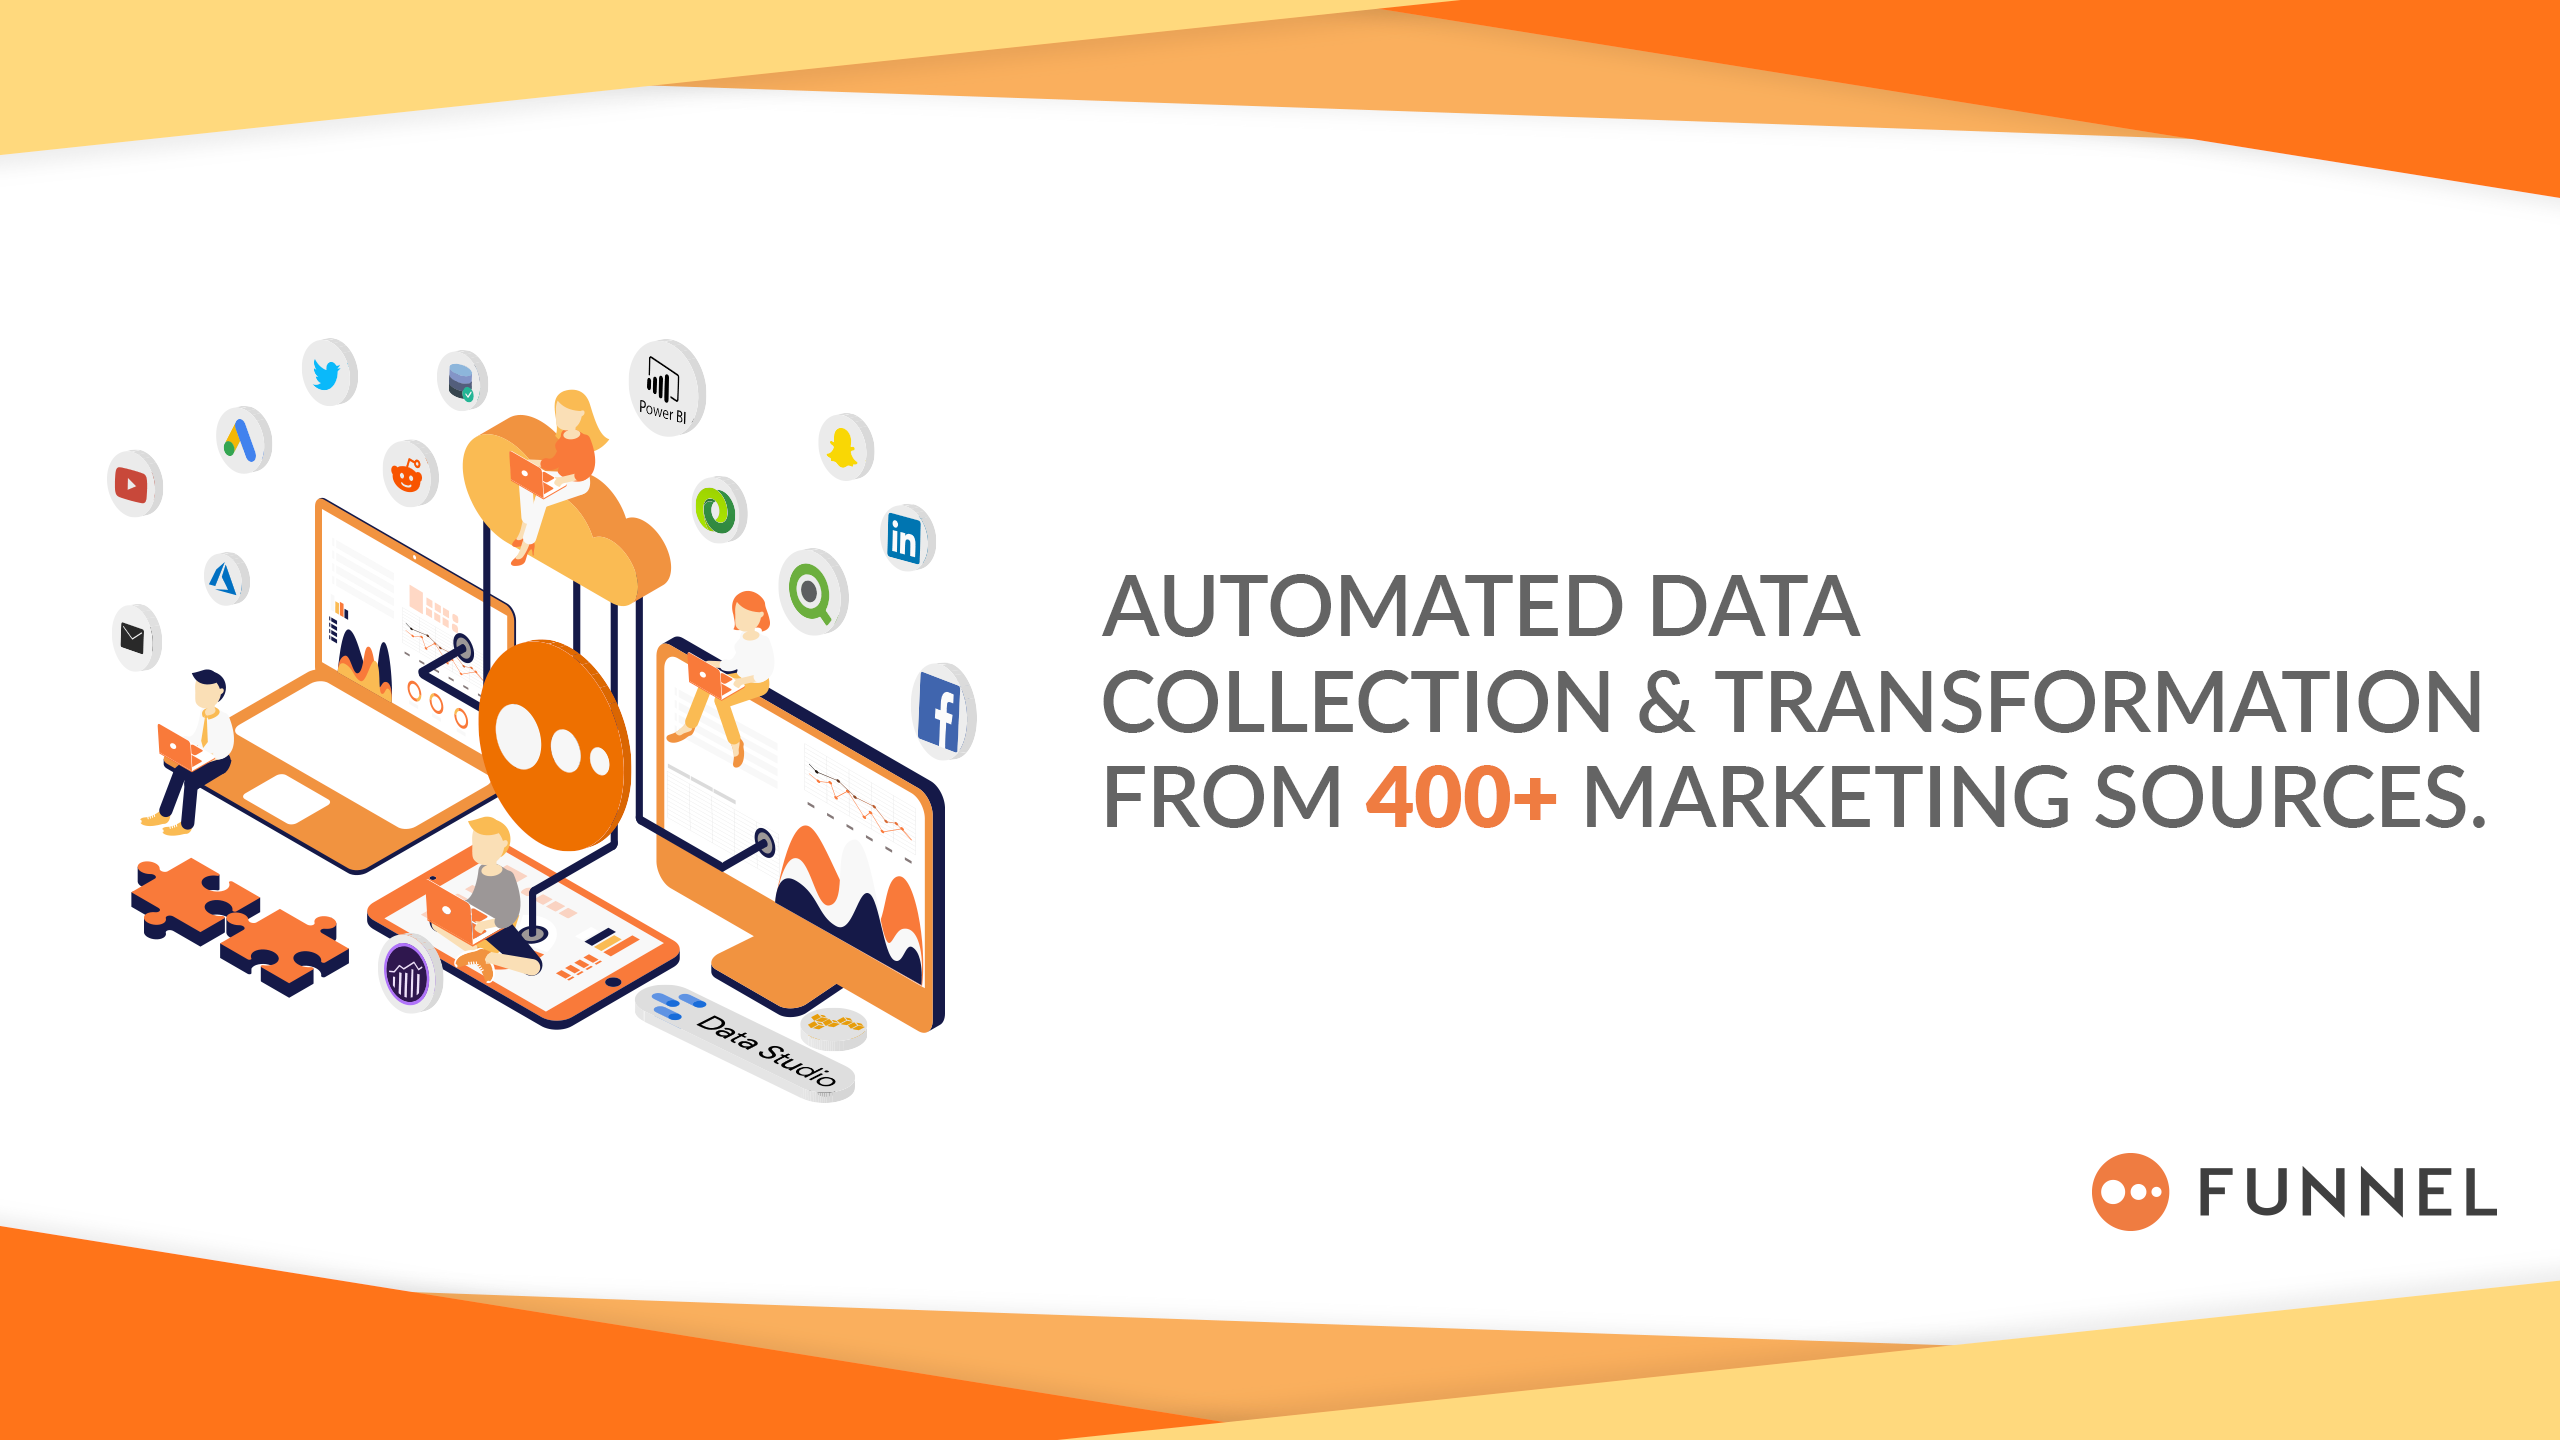 Funnel Demo - Automated Data Collection & Transformation